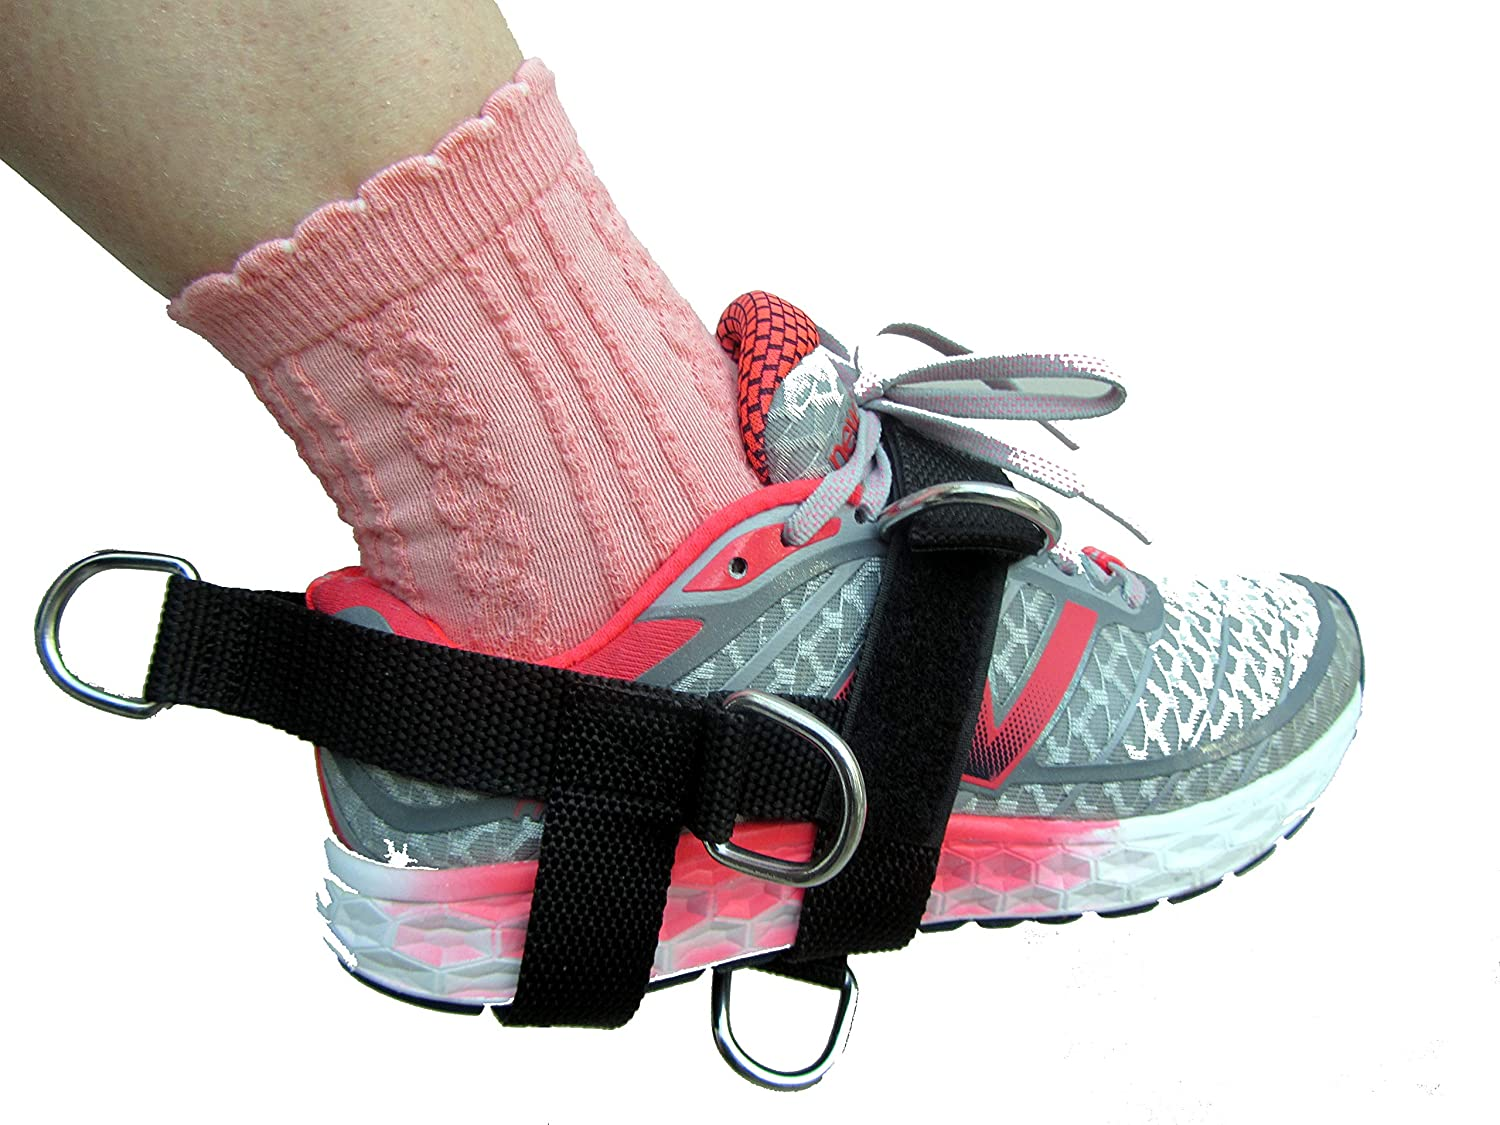 Sold Single LEG//FOOT//ANKLE Training//Fitness Strap Pilates NEW SHIHAN Power-Sports 5-D Ankle//Foot Strap 5 -Ring 5 Position Cable Gym Machine Attachment For Men//Women Yoga Ideal for Donkey Kickbacks